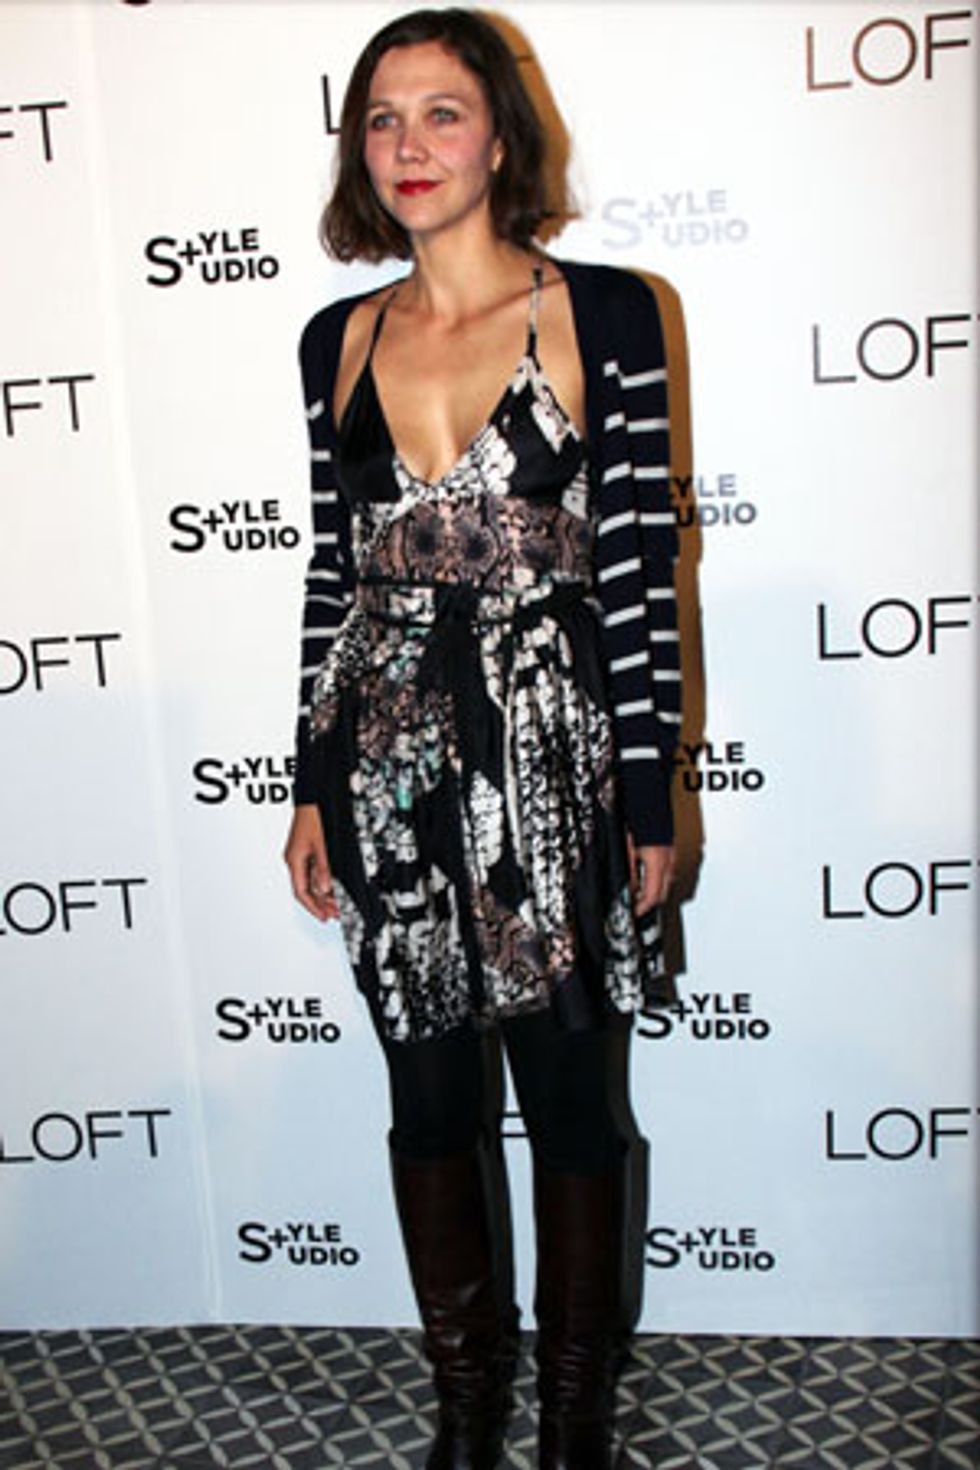 About Last Night... LOFT Style Studio Launch Party at the Bowery Hotel